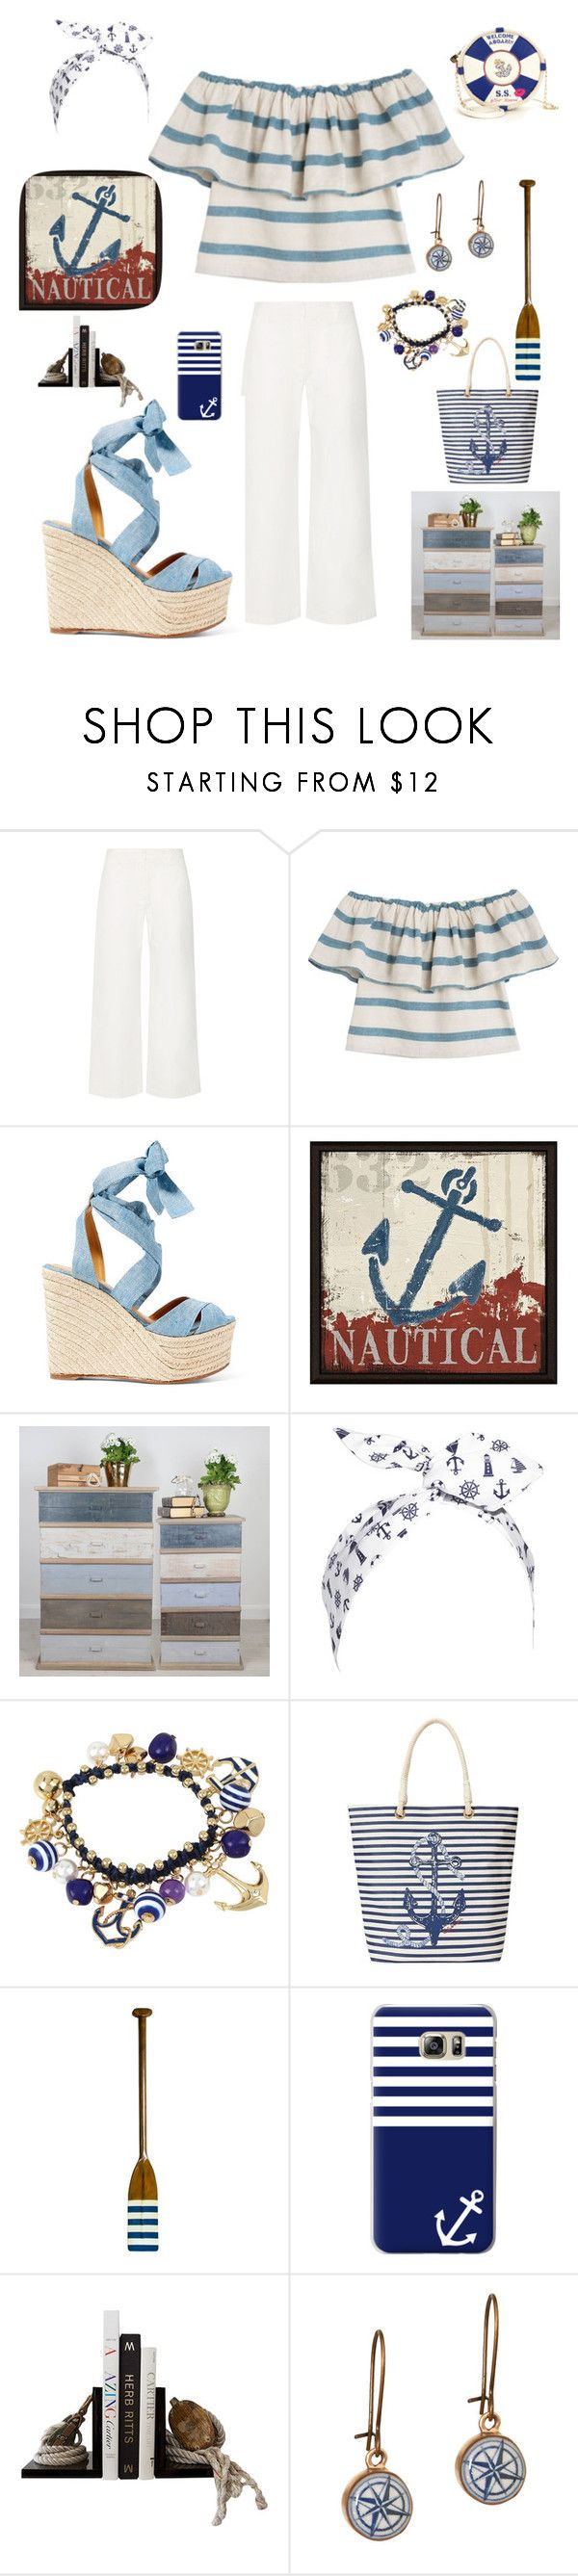 """Summer Nautical Sandals"" by kotnourka ❤ liked on Polyvore featuring The Row, Mara Hoffman, Ralph Lauren, Green Leaf Art, Dibor, bleu, C. Wonder, Authentic Models, Casetify and Stefanie Phan"